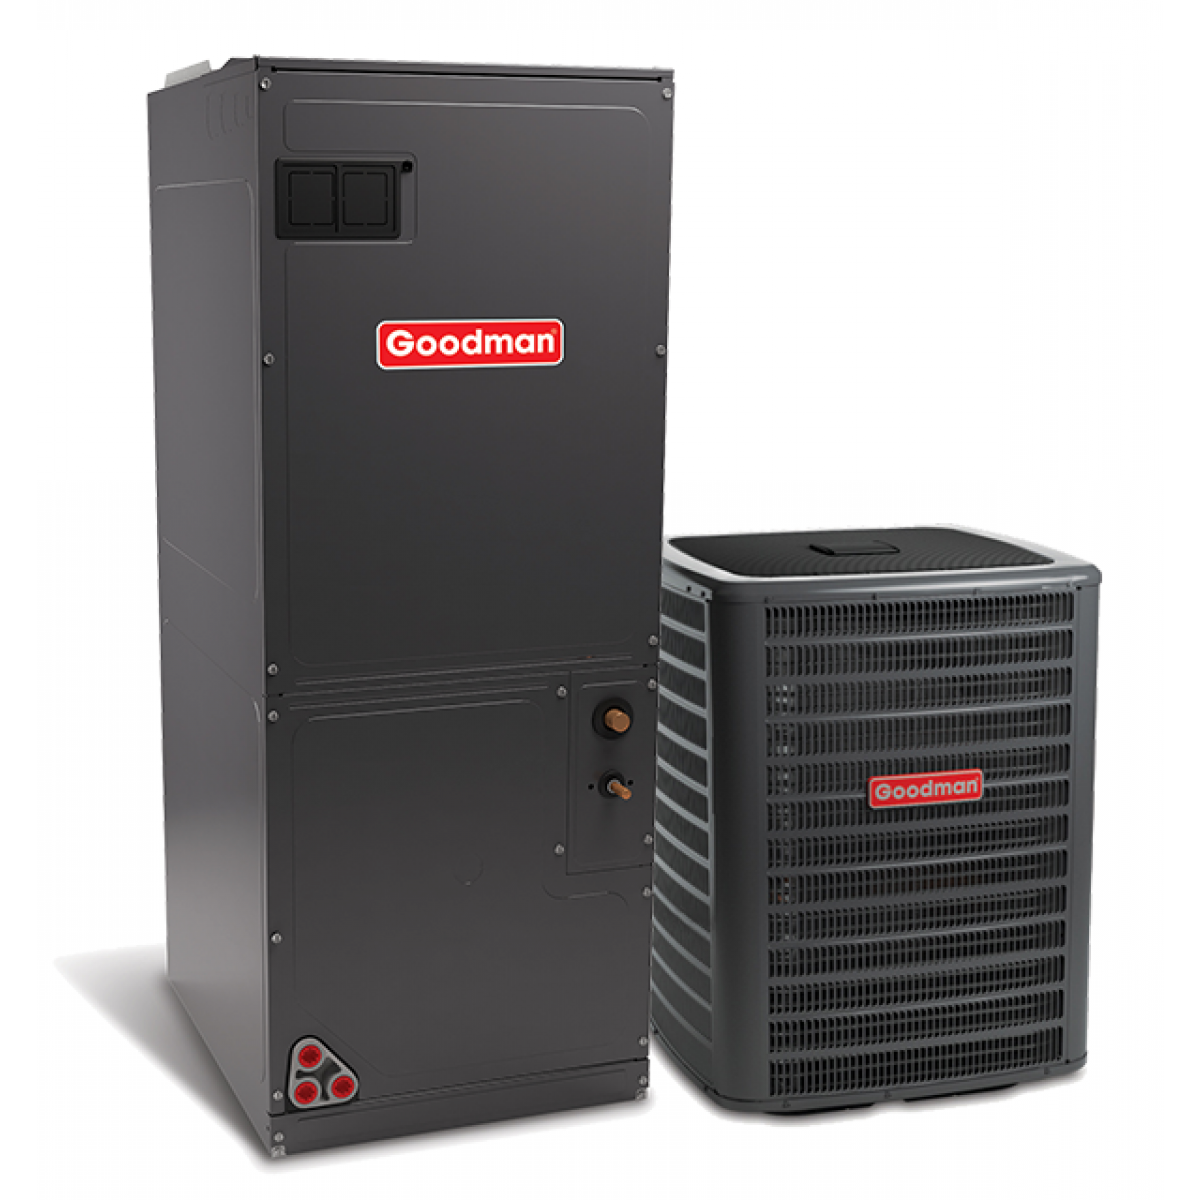 Goodman 3 0 Ton 16 Seer Variable Speed Air Conditioning